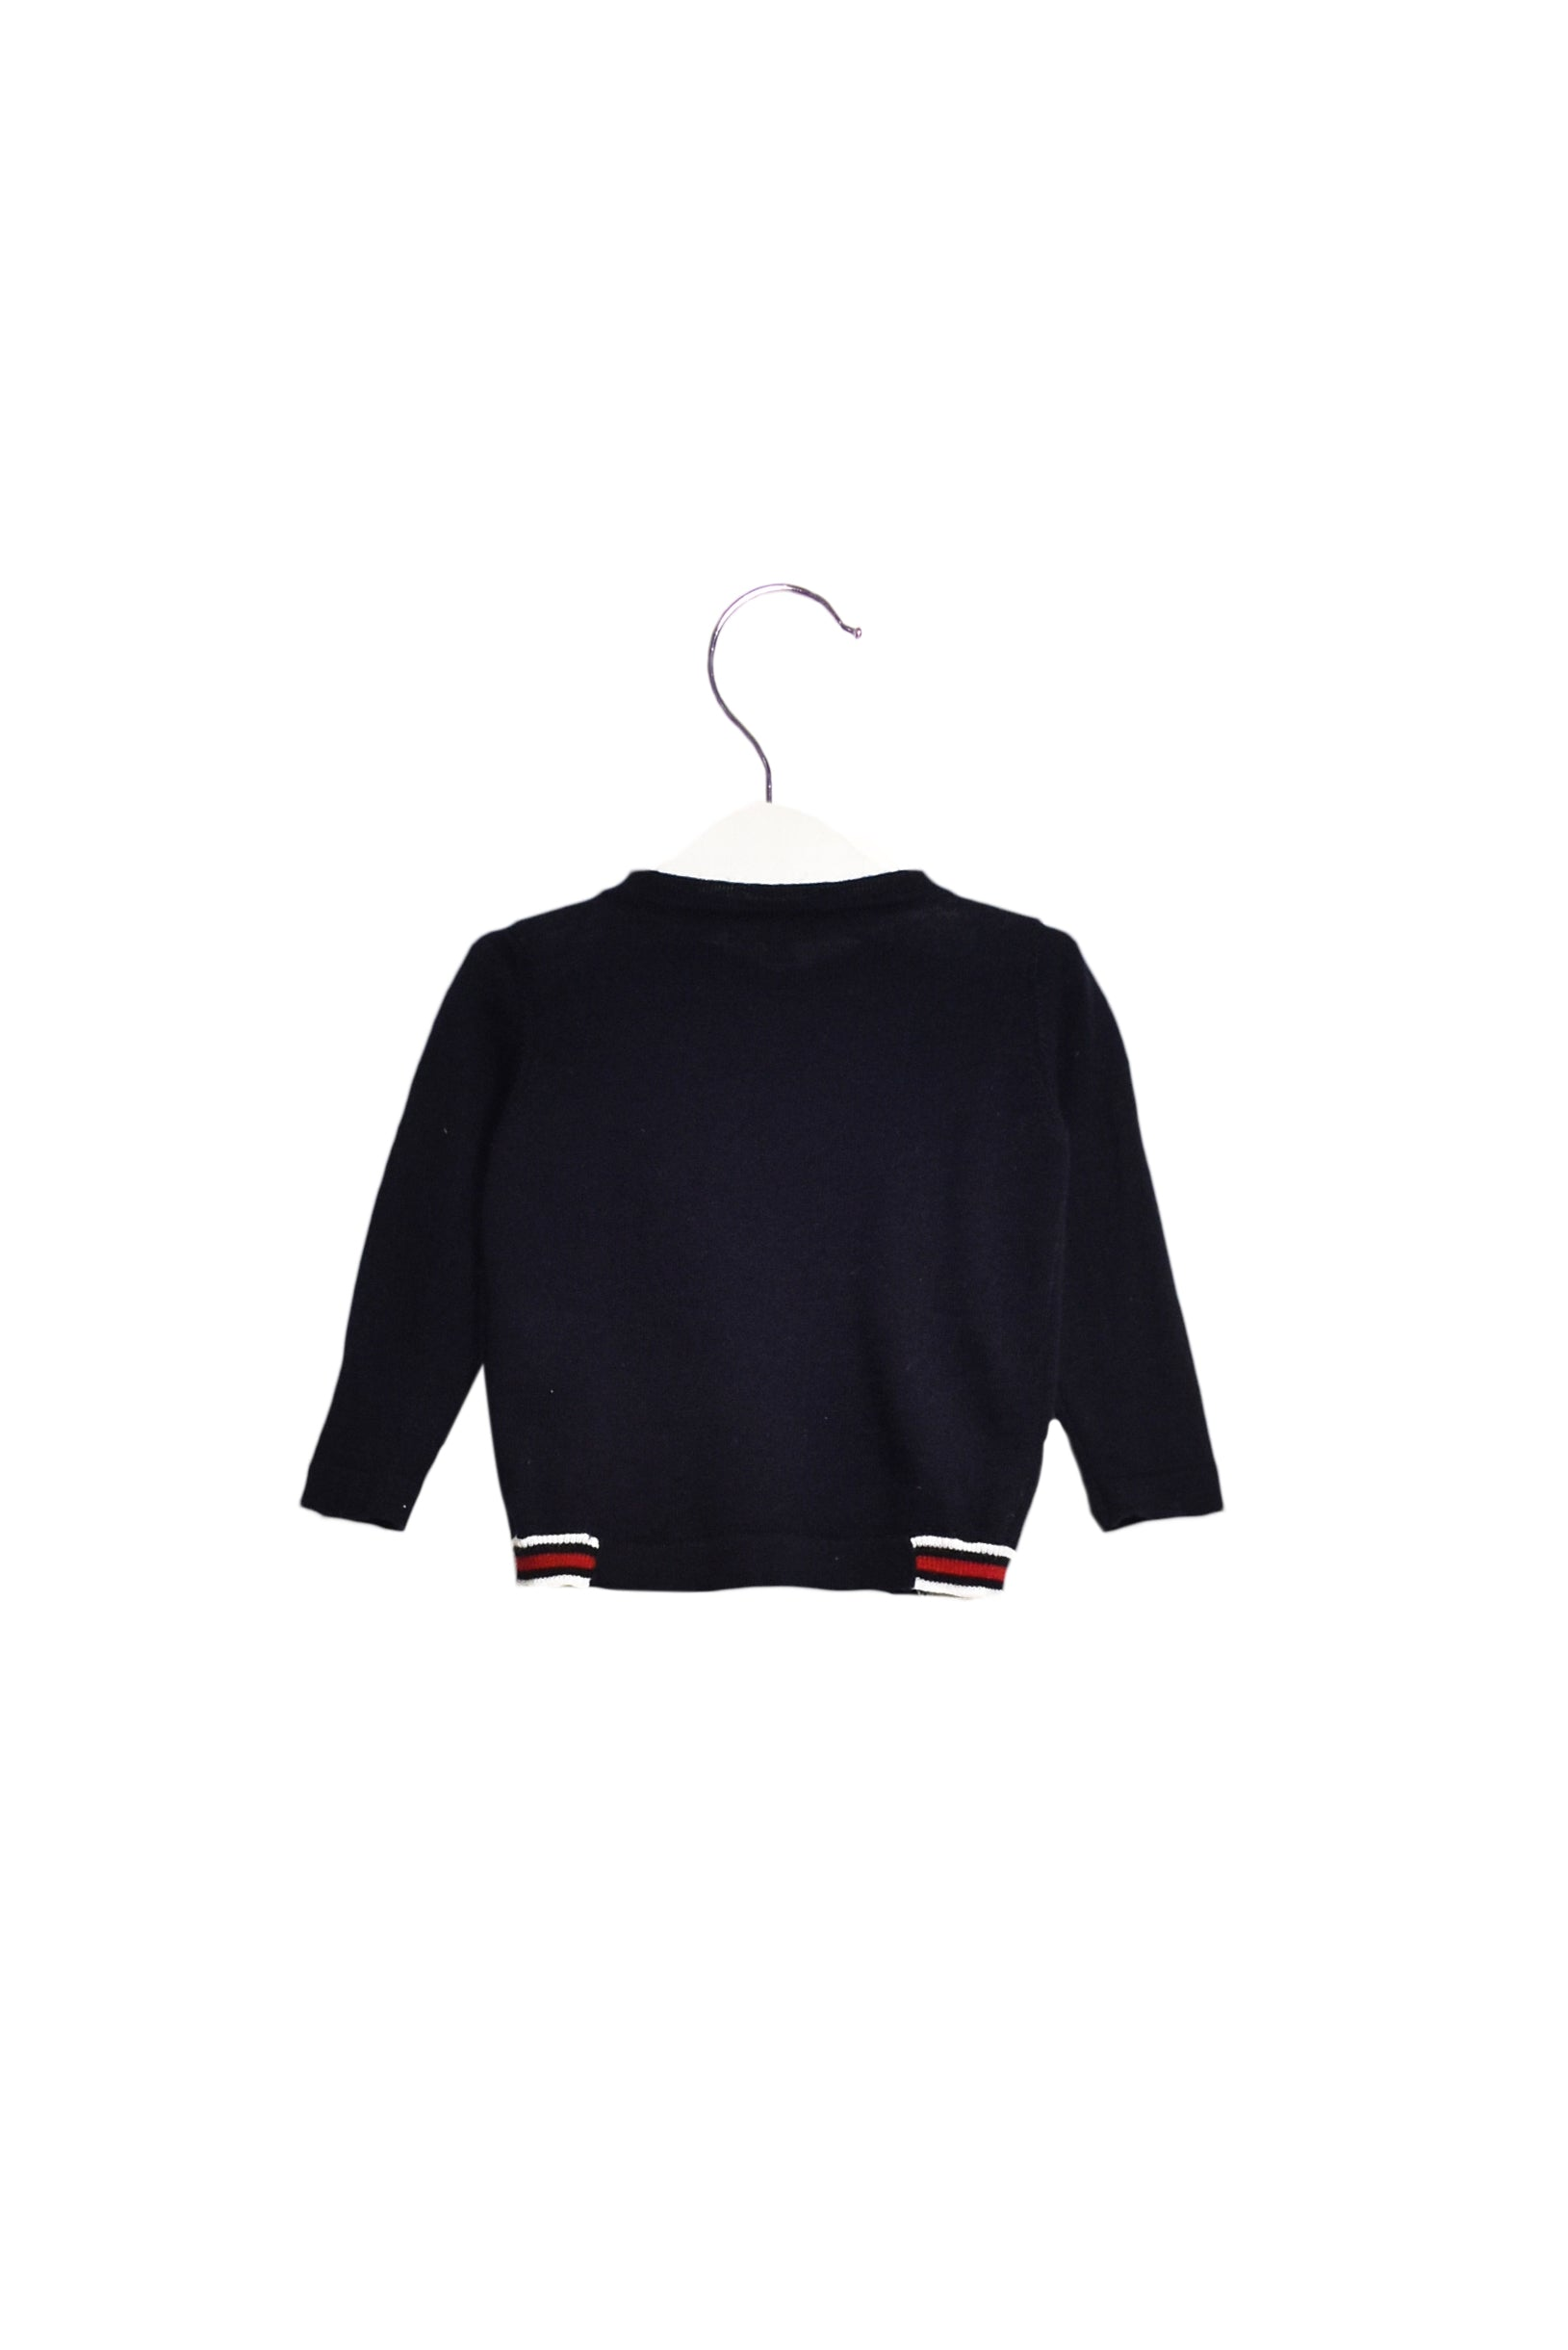 522c4be0a 10021184 Gucci Baby~Cardigan 3-6M at Retykle